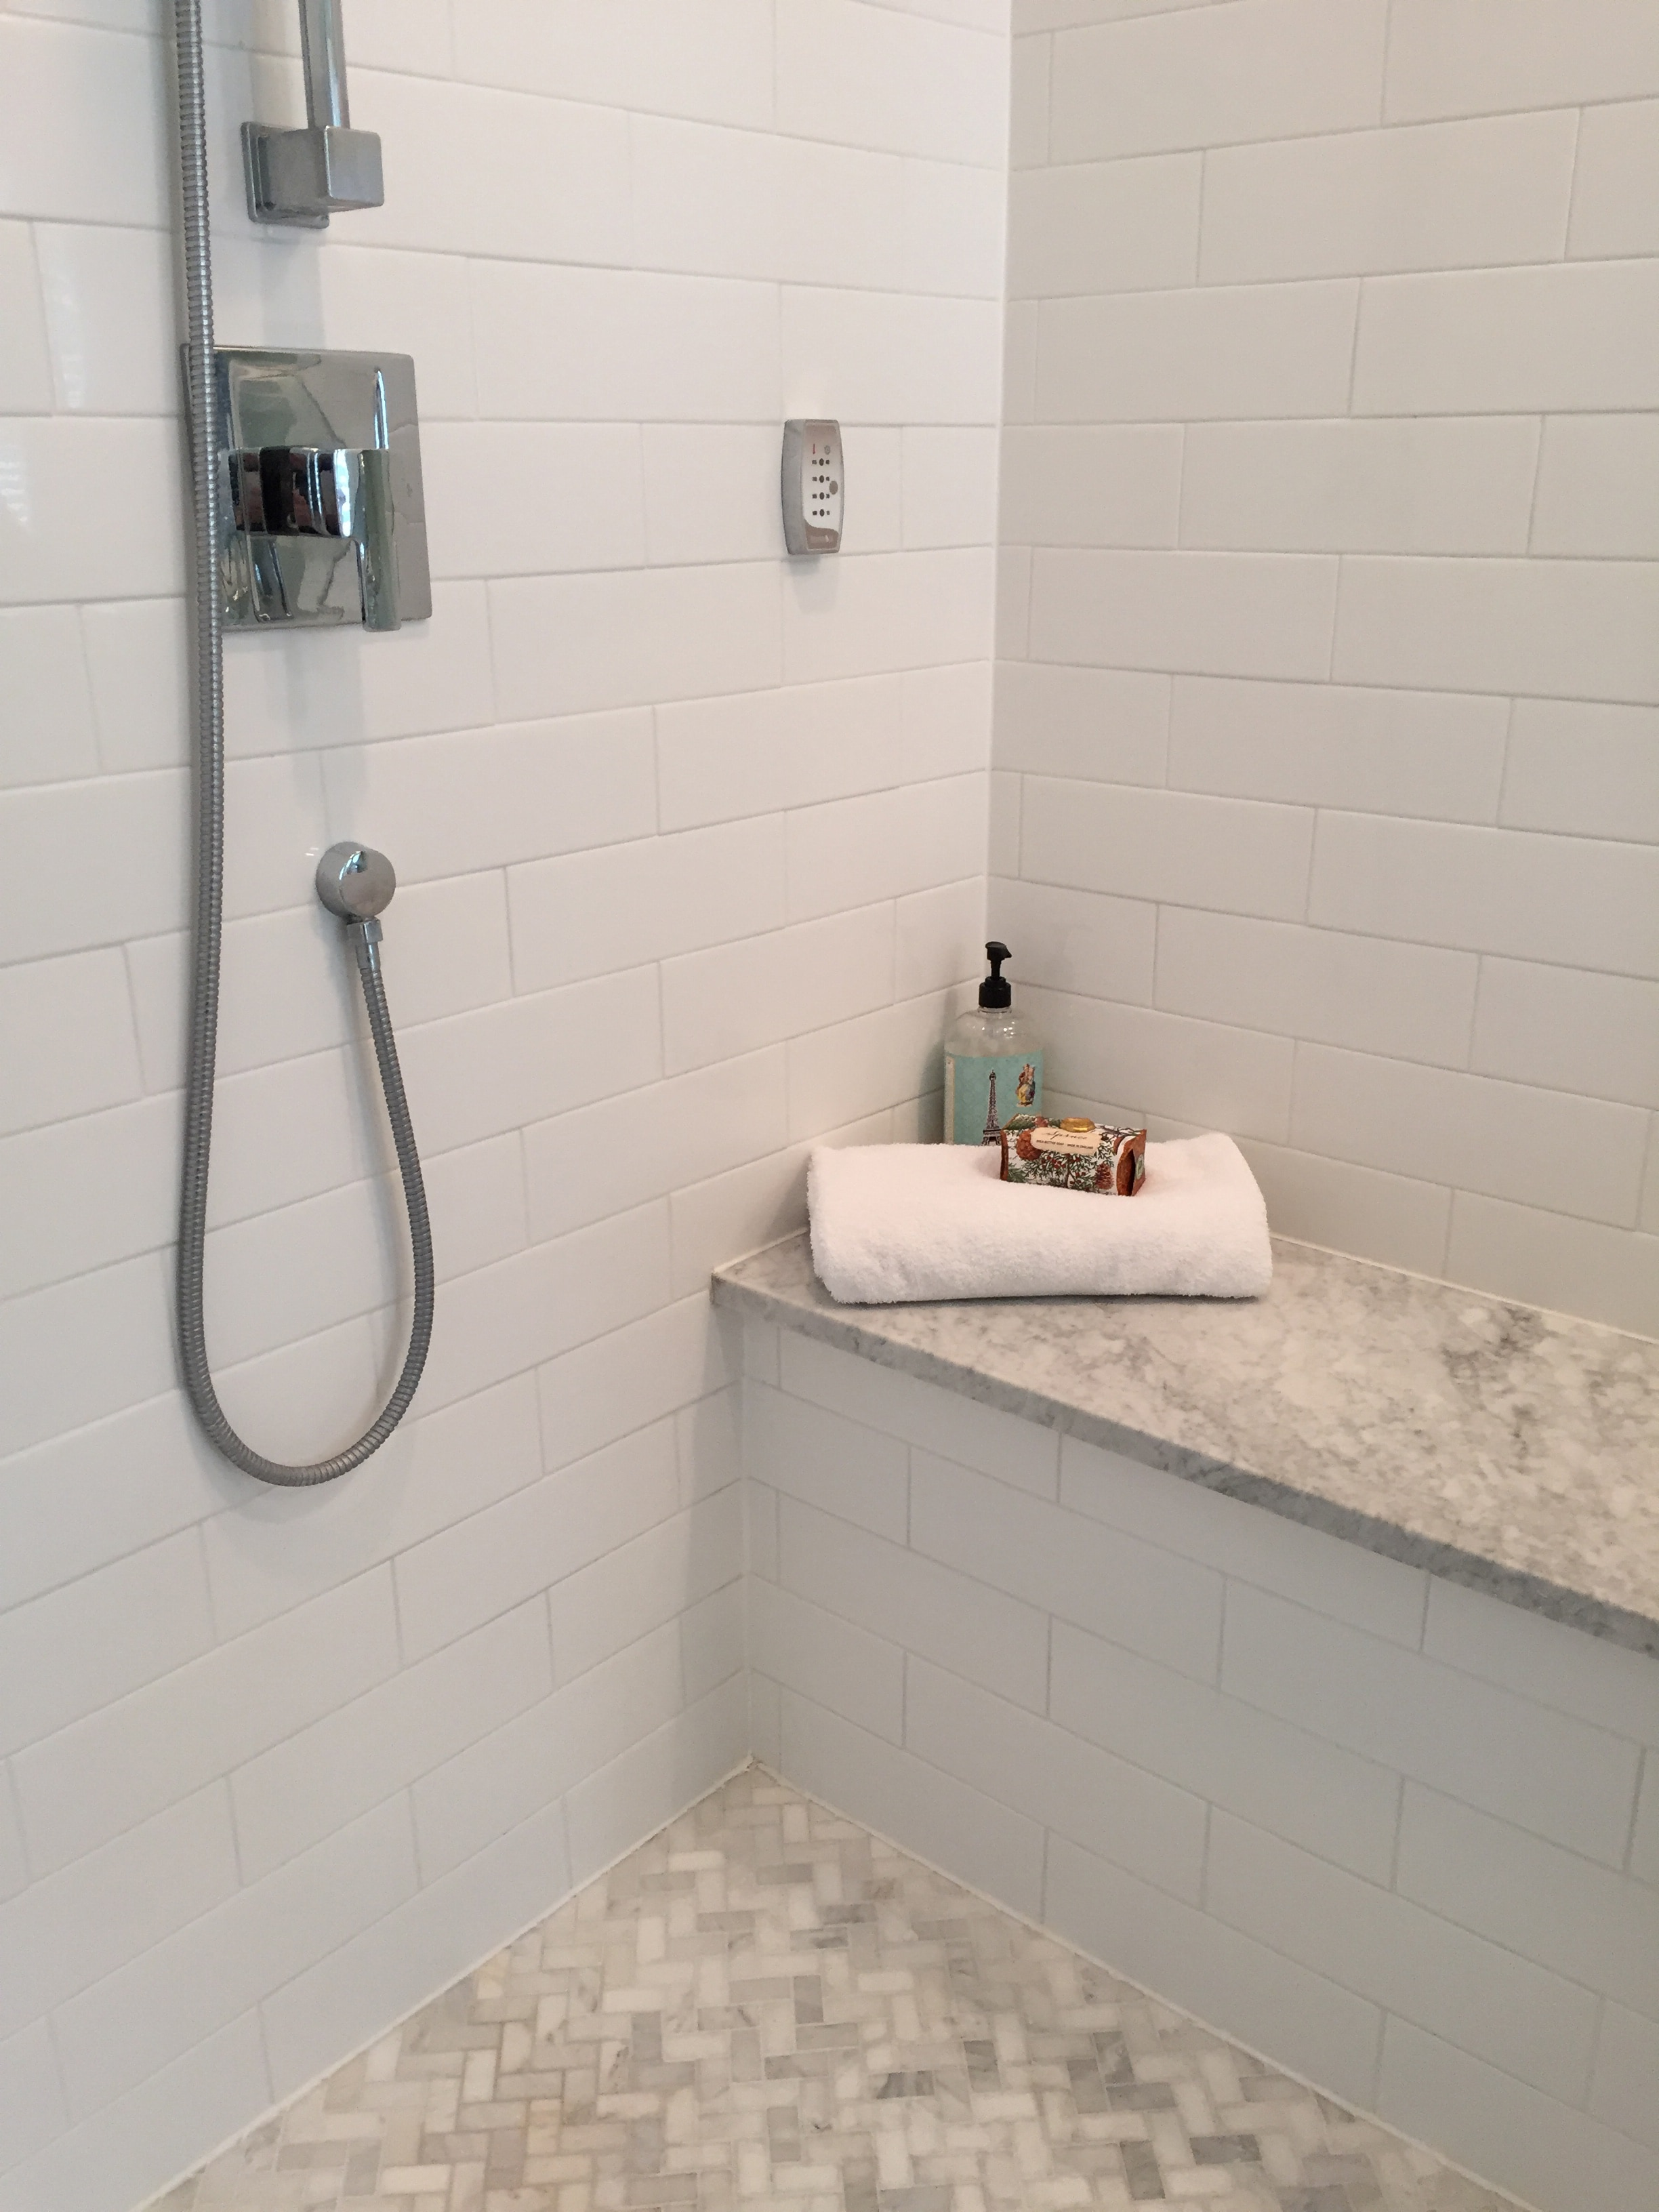 Subway Tile Bathroom Hammersmith Subway Tile White 4